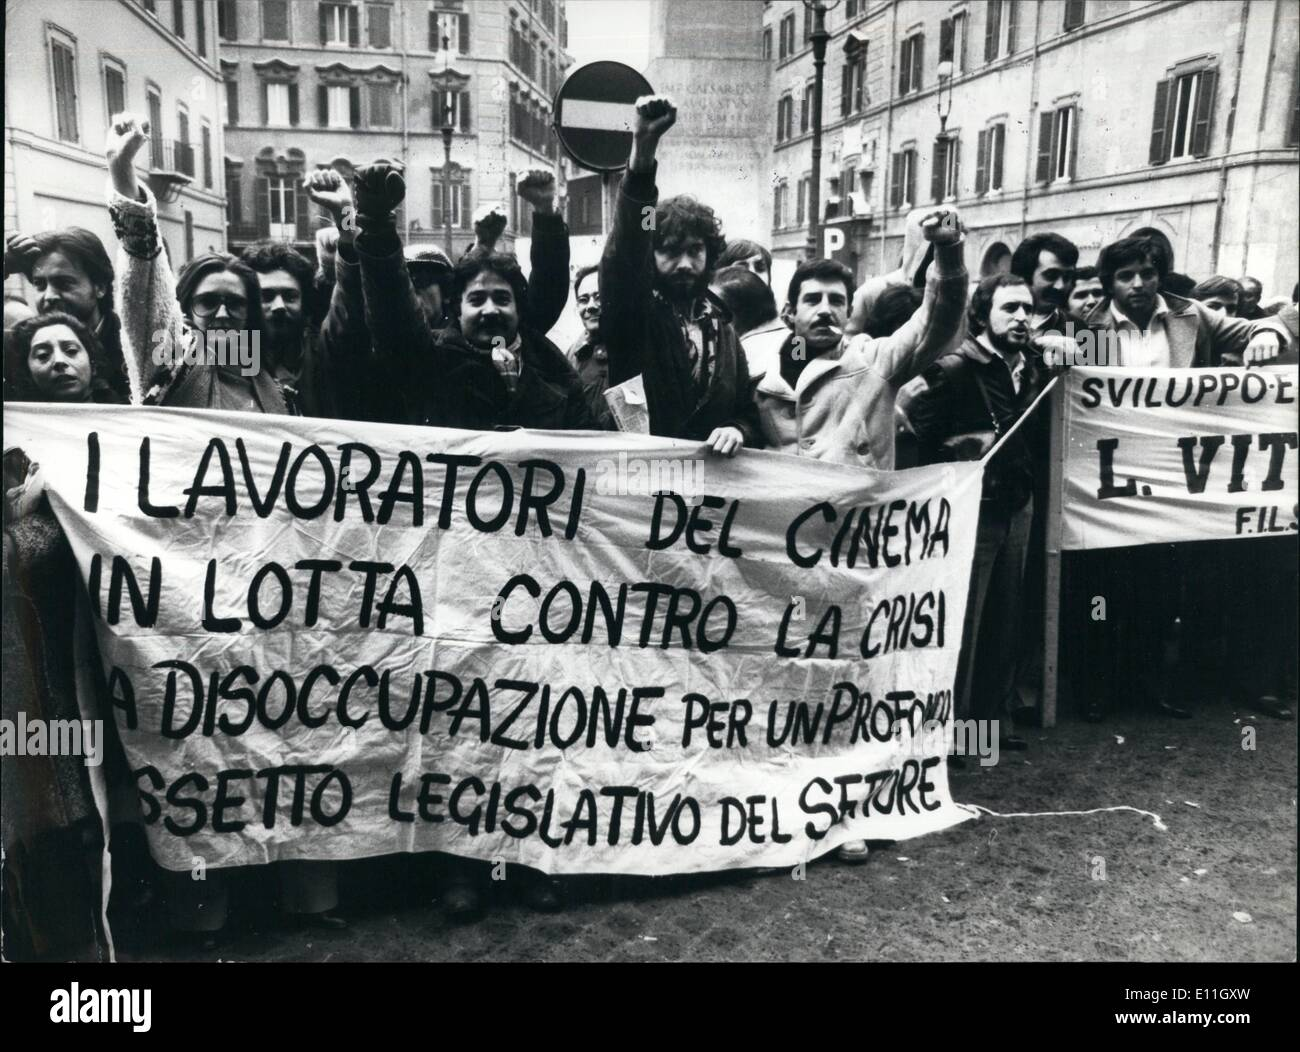 Dec. 12, 1977 - Italian Film Industry Crisis: Italian film production; currently at its lowest ebb, and the falling off of cinema attendance, blamed on television, has resulted in demonstration by workers at the studios becoming unemployed. They are demanding that the Italian government subsidize the cinema industry as they demonstrate outside the Chamber of Deputies in Rome. - Stock Image